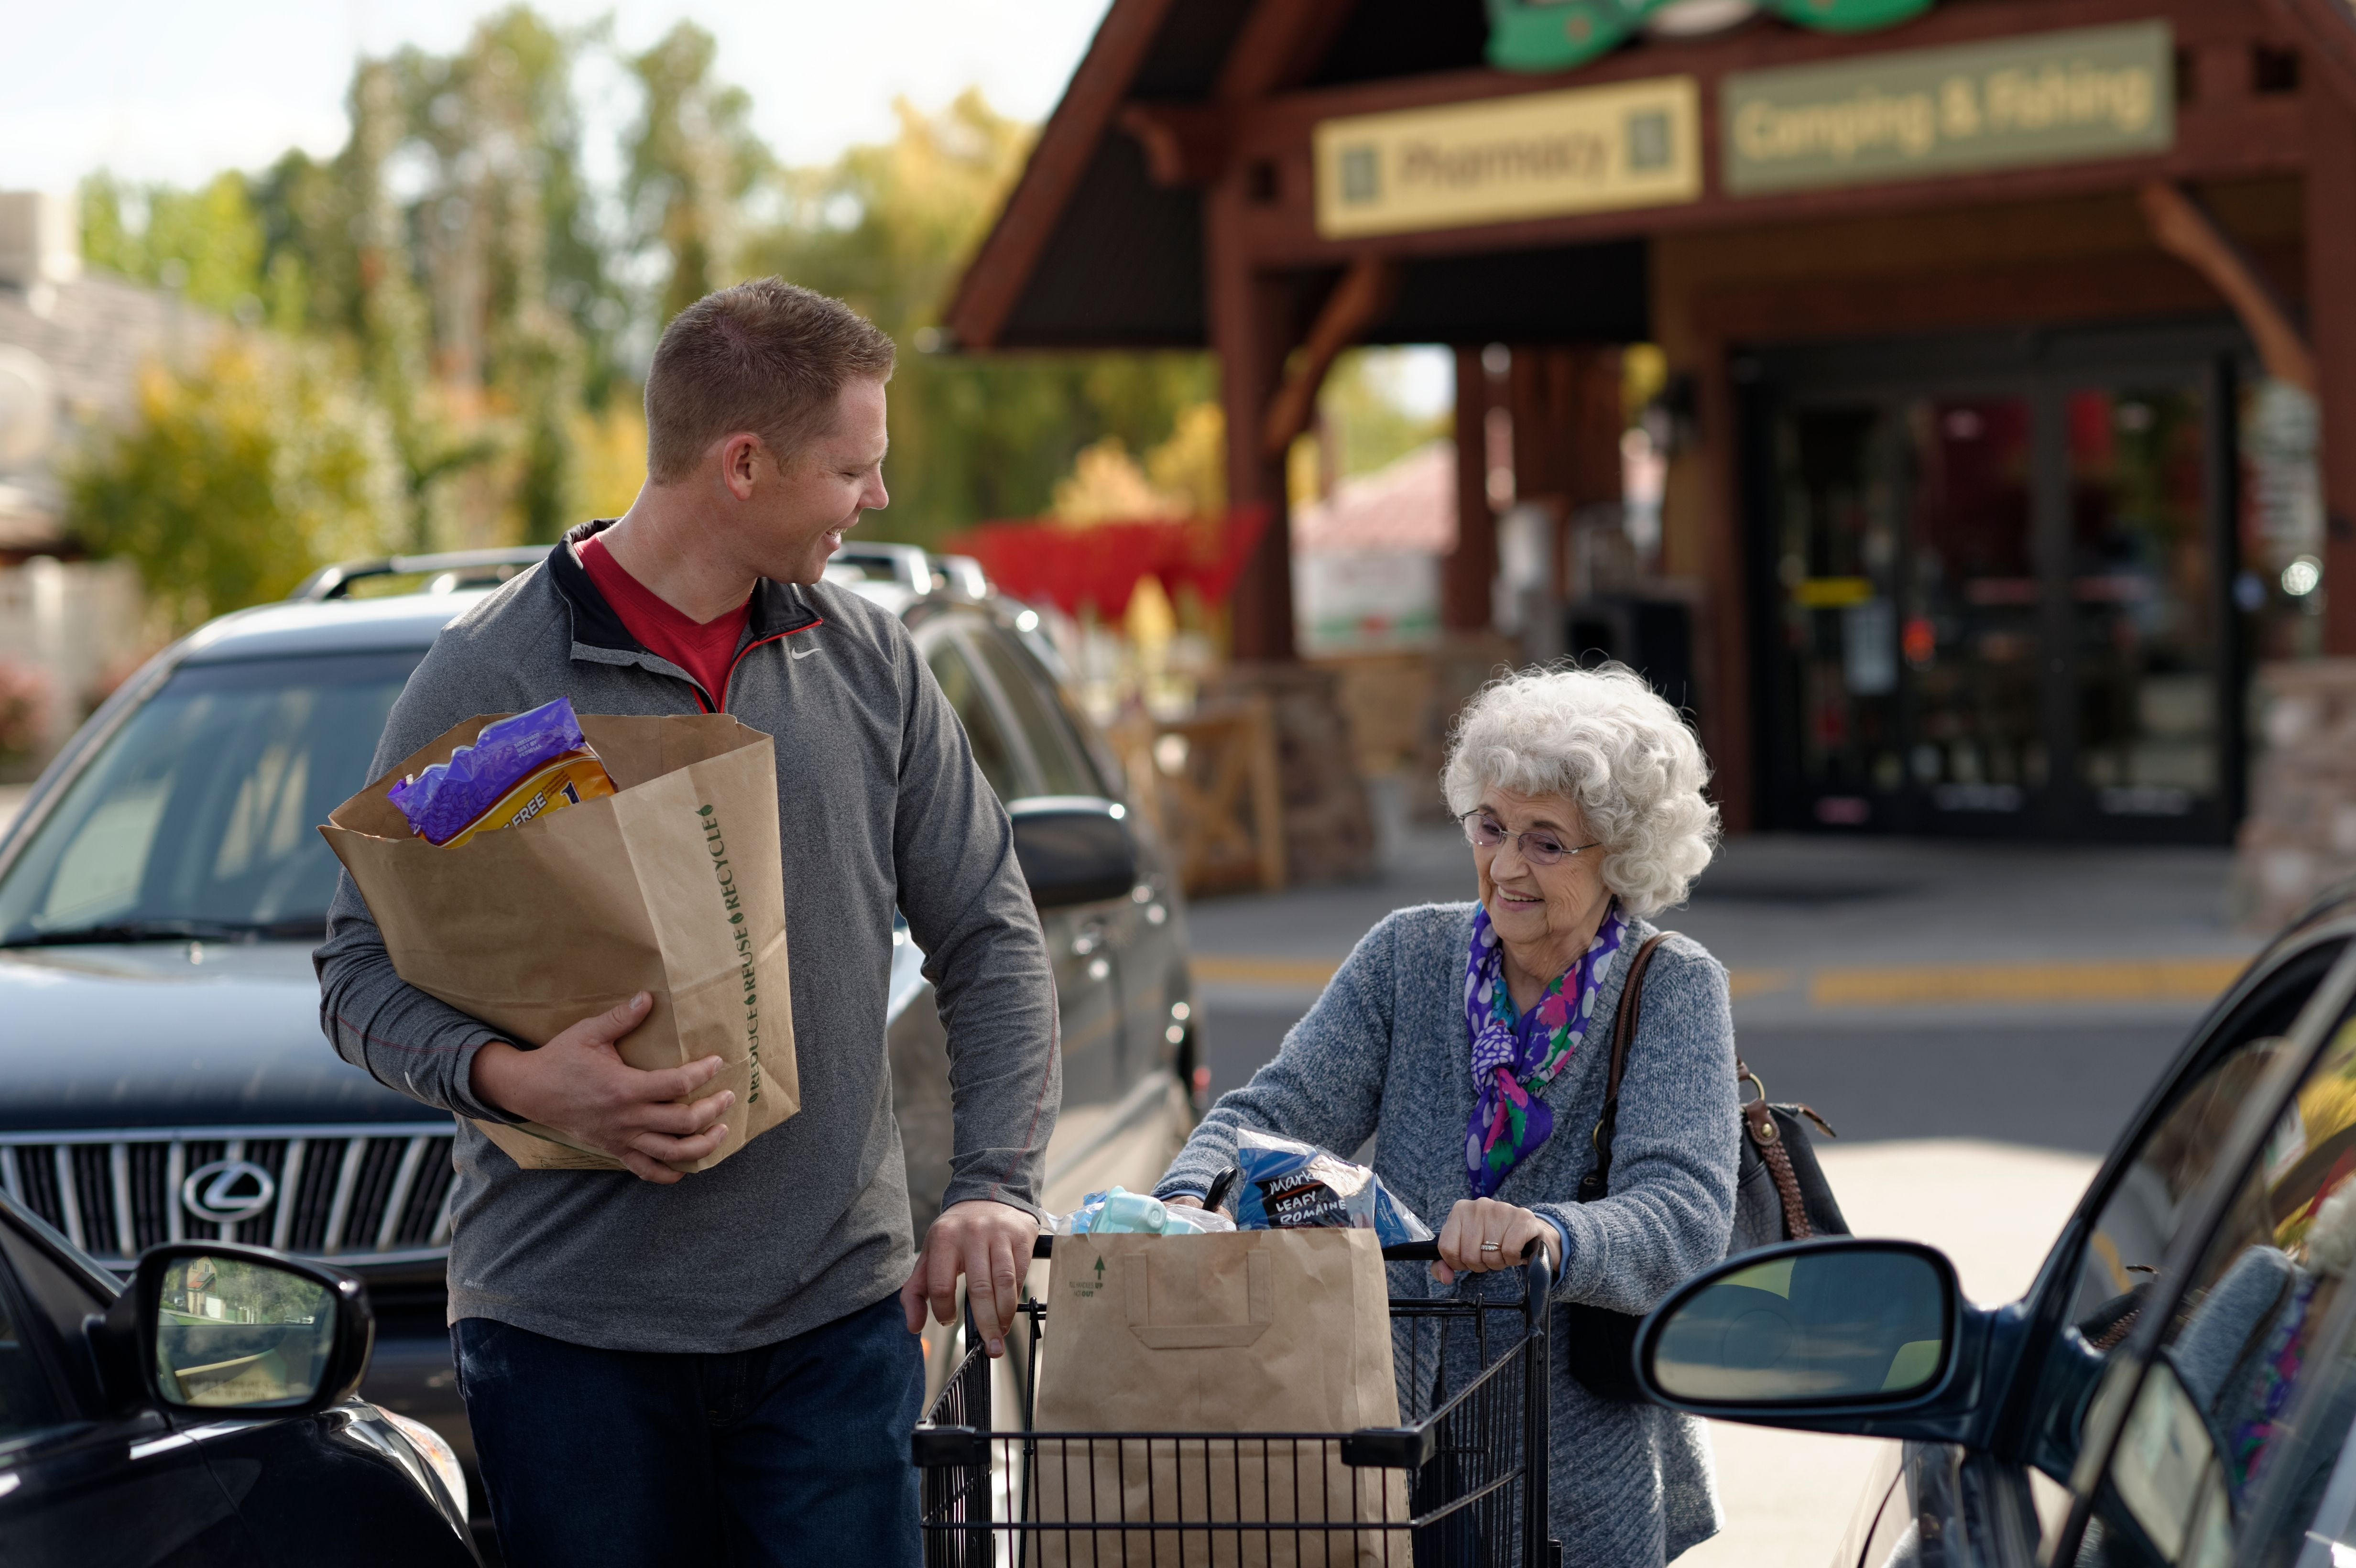 A young man helps an elderly woman carry groceries out to her car.